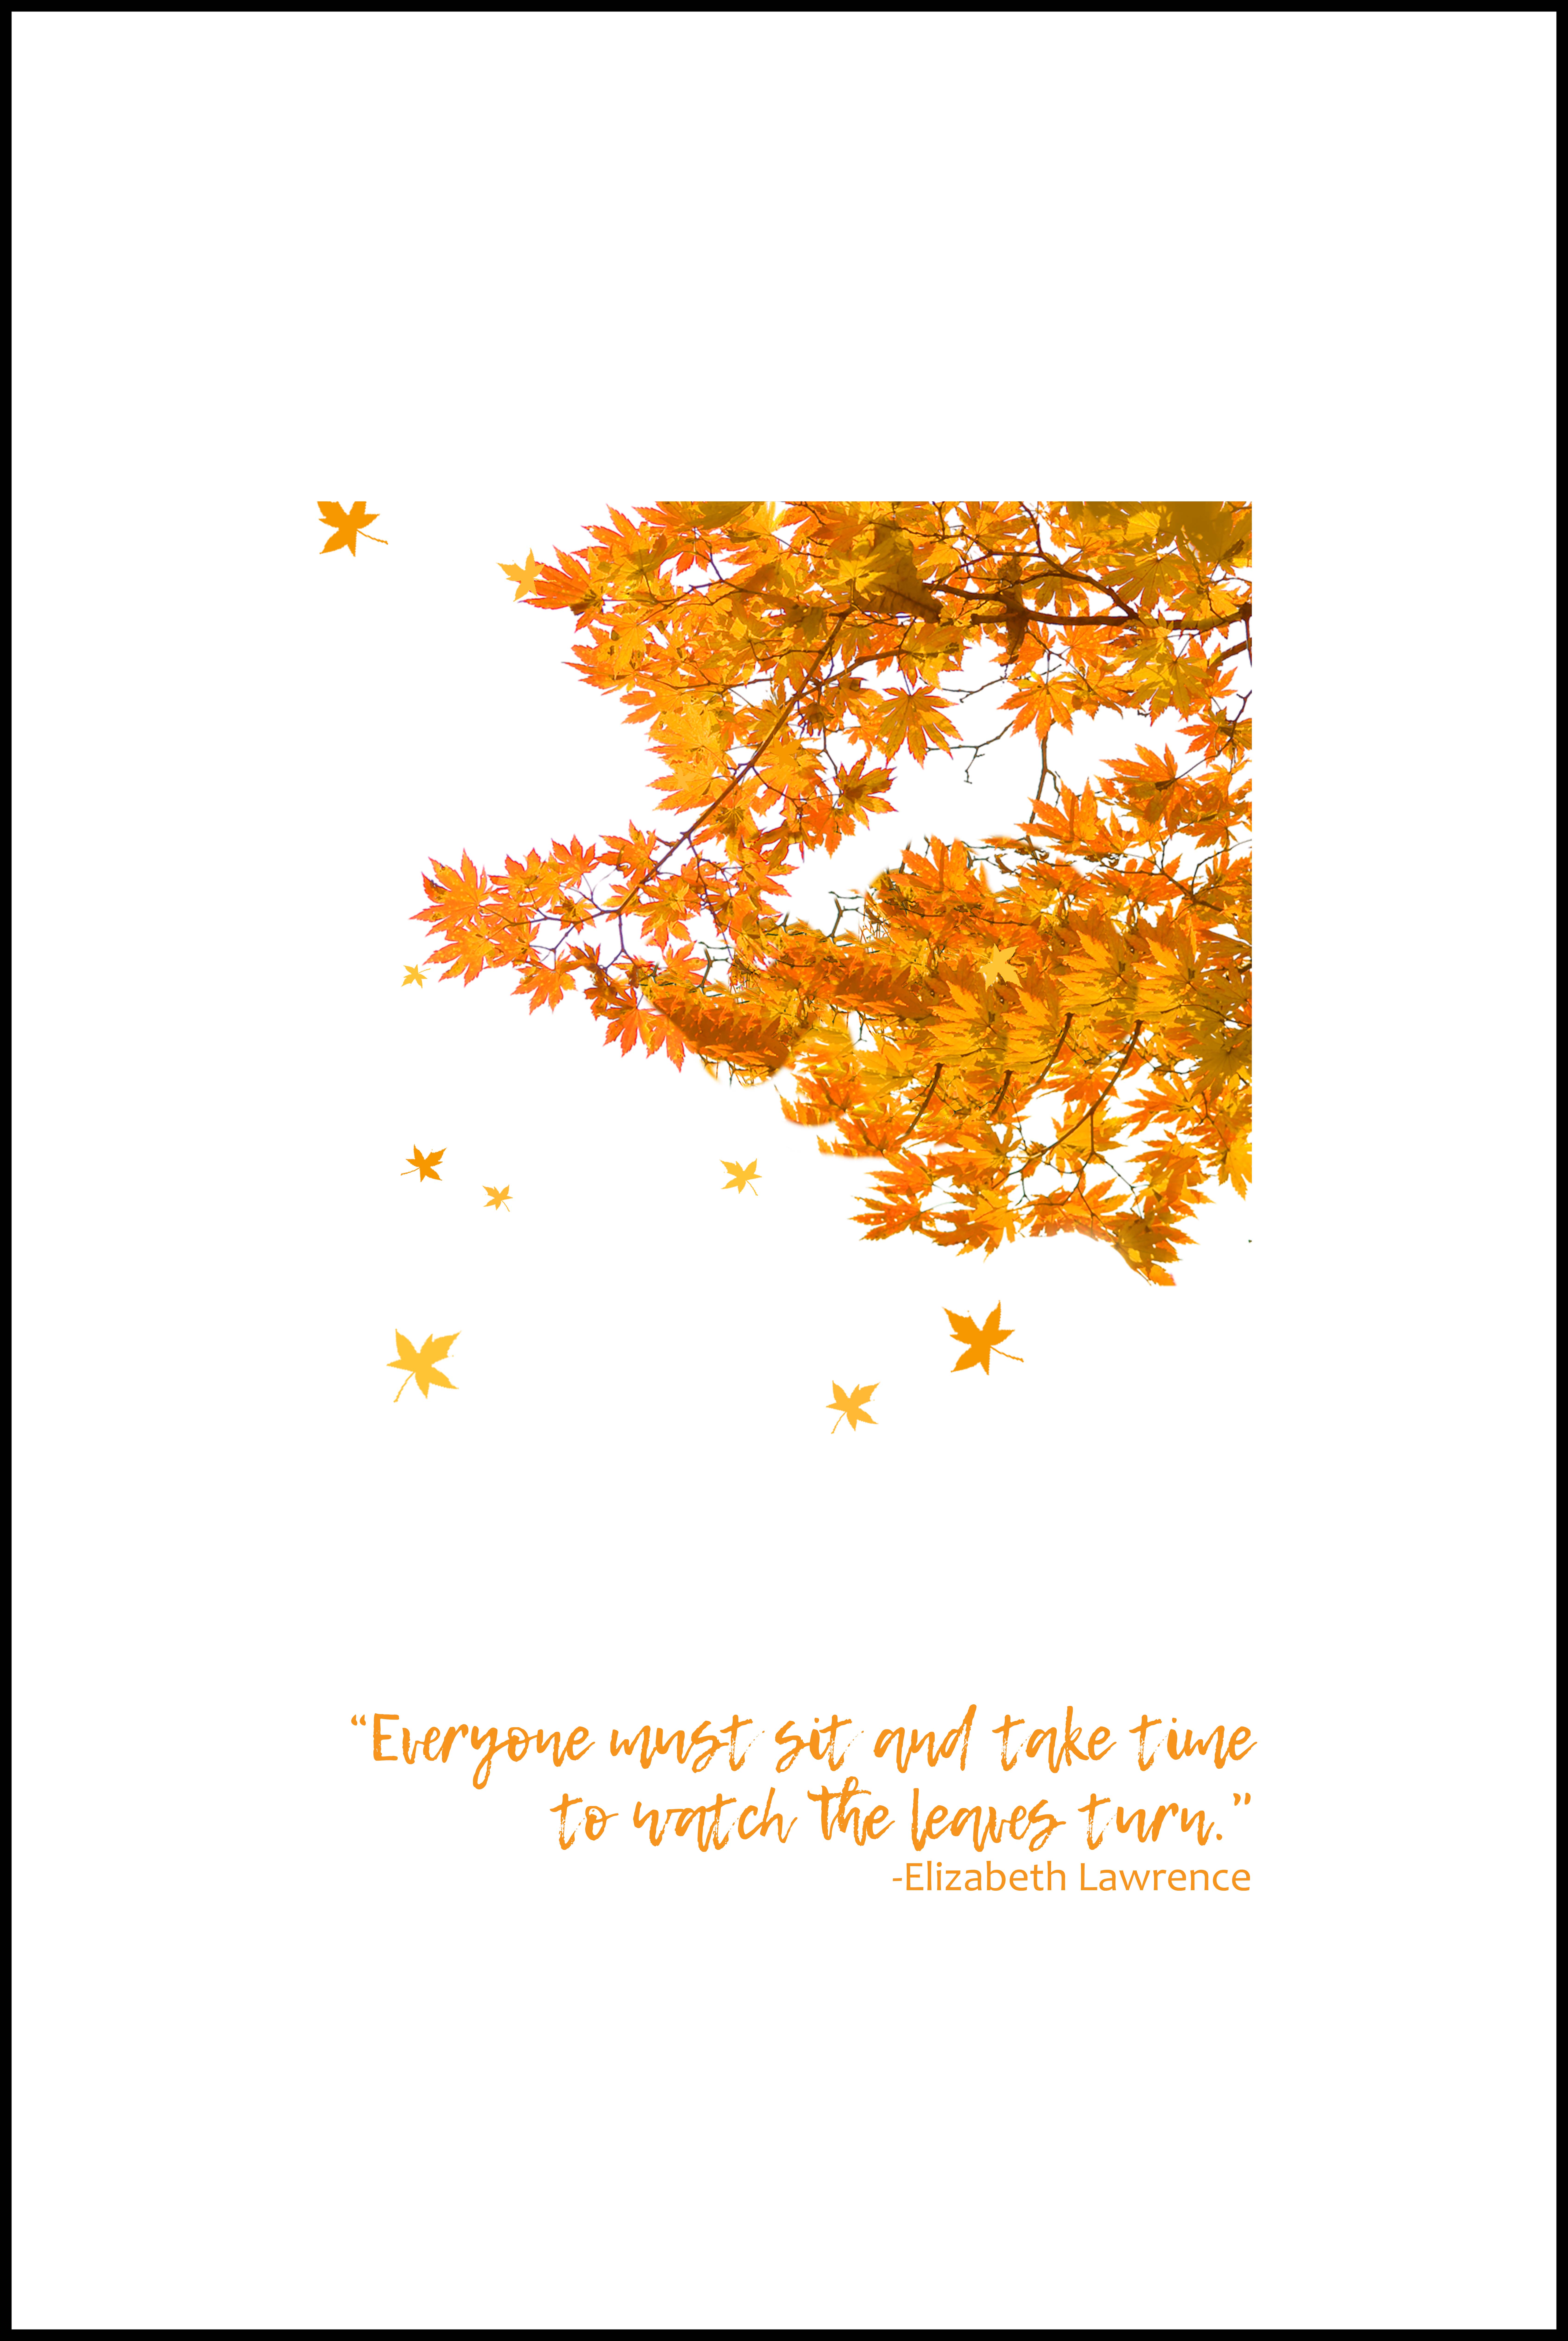 Watch the Leaves Turn Elizabeth Lawrence Quote